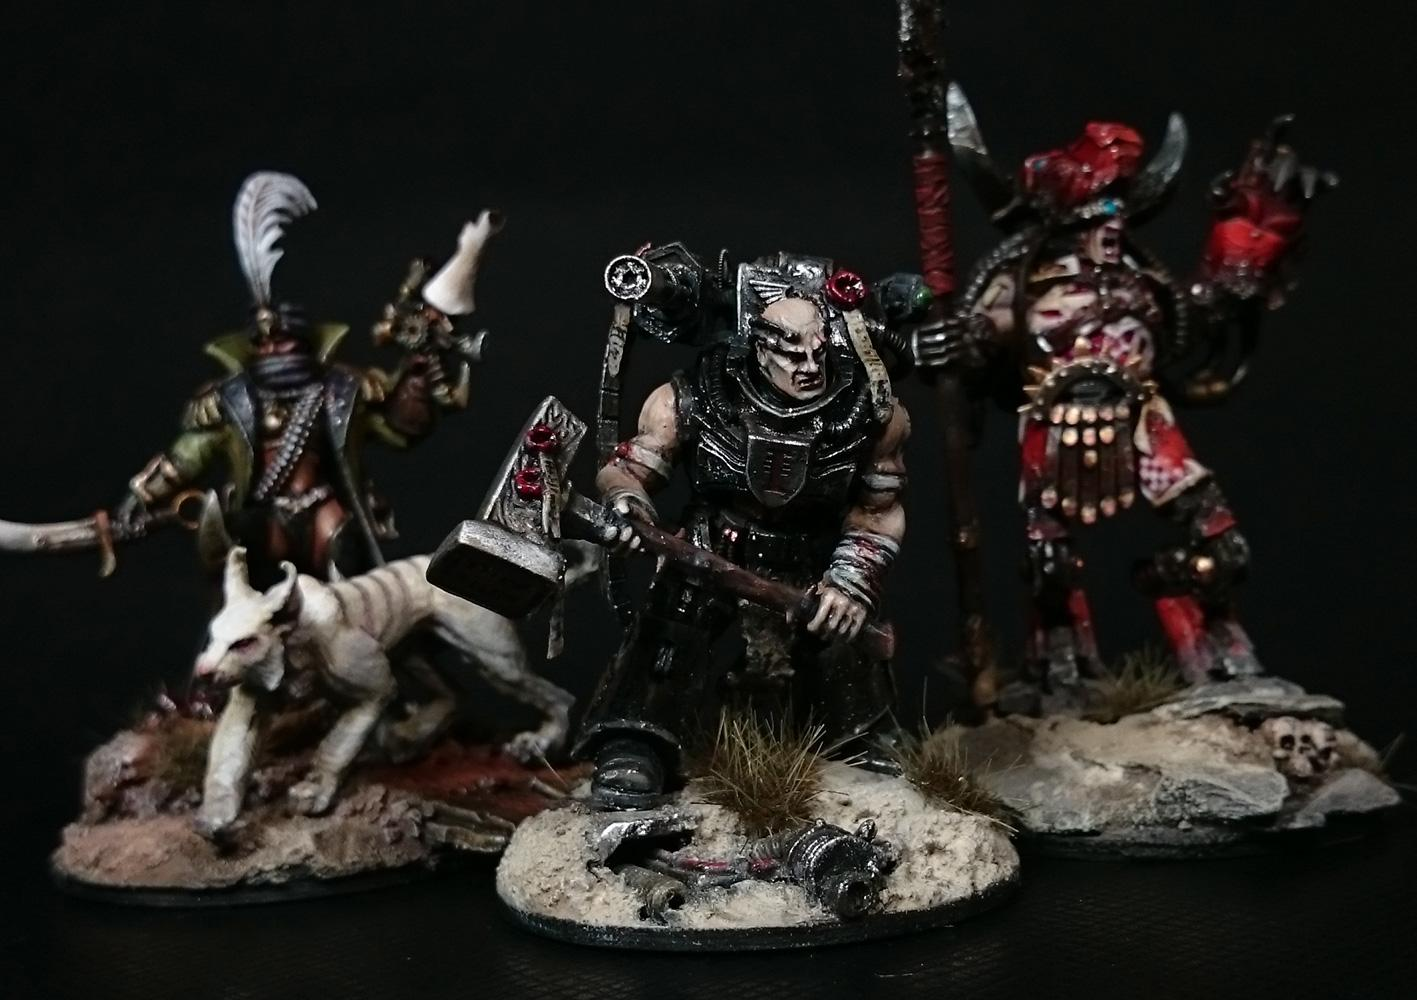 Inq28, Inquisitor, Retinue, Rogue Trader, Skitarii, Warband